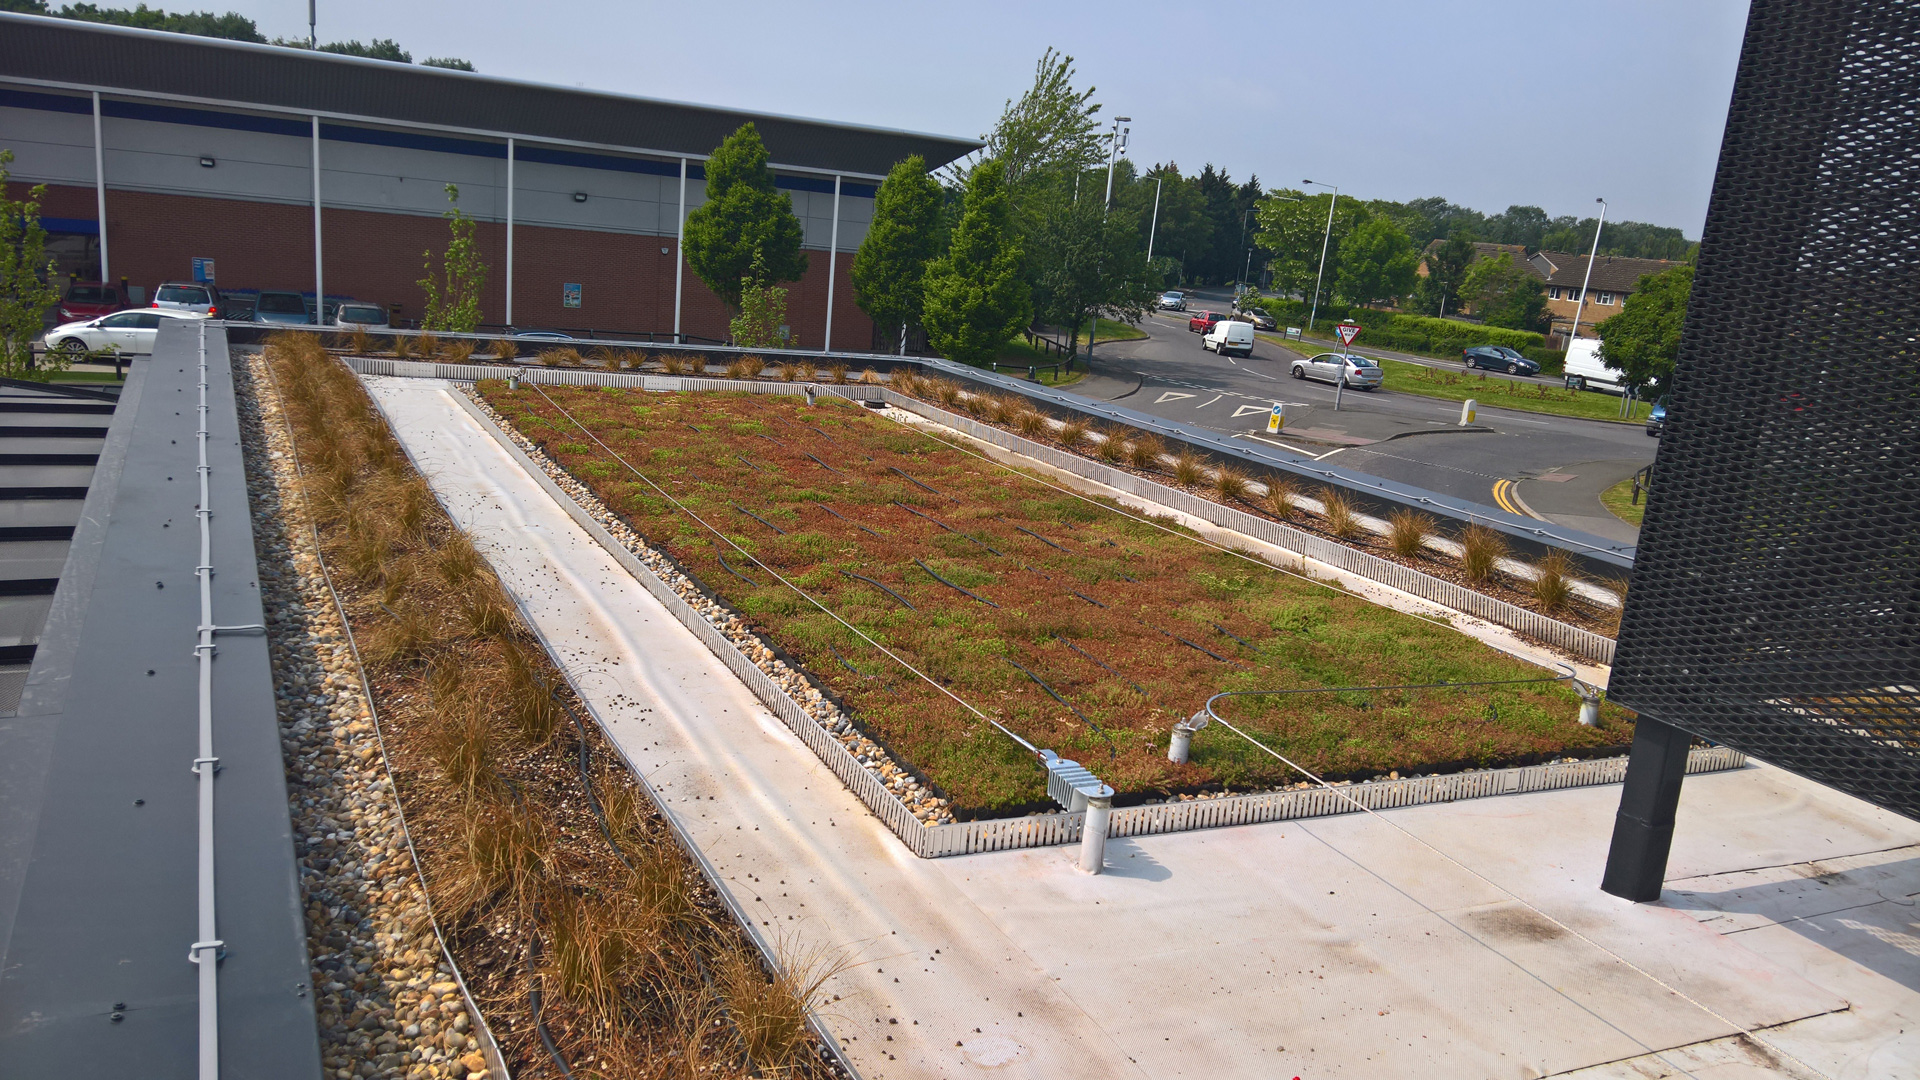 Green roof, Starbucks drive-thru